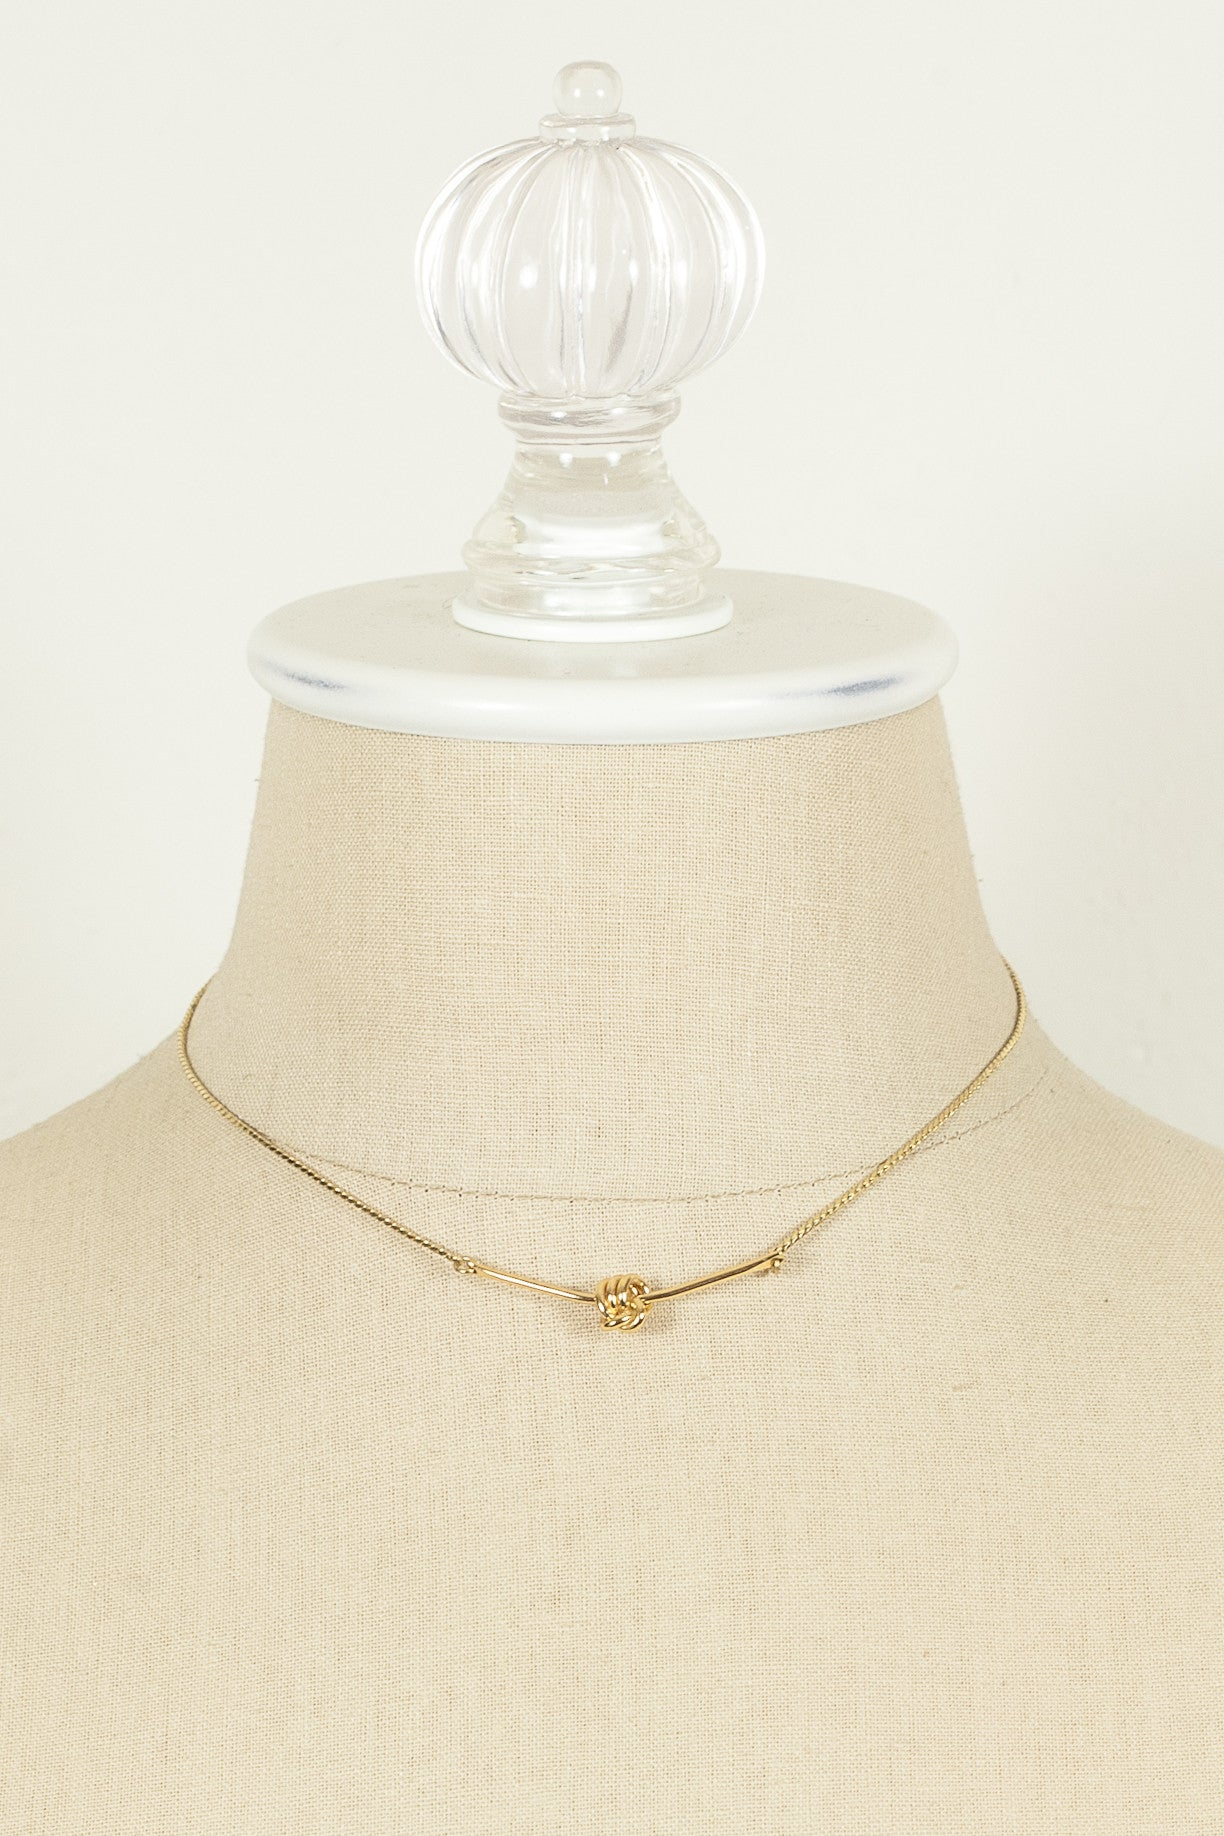 70's__Monet__Dainty Knot Bar Necklace